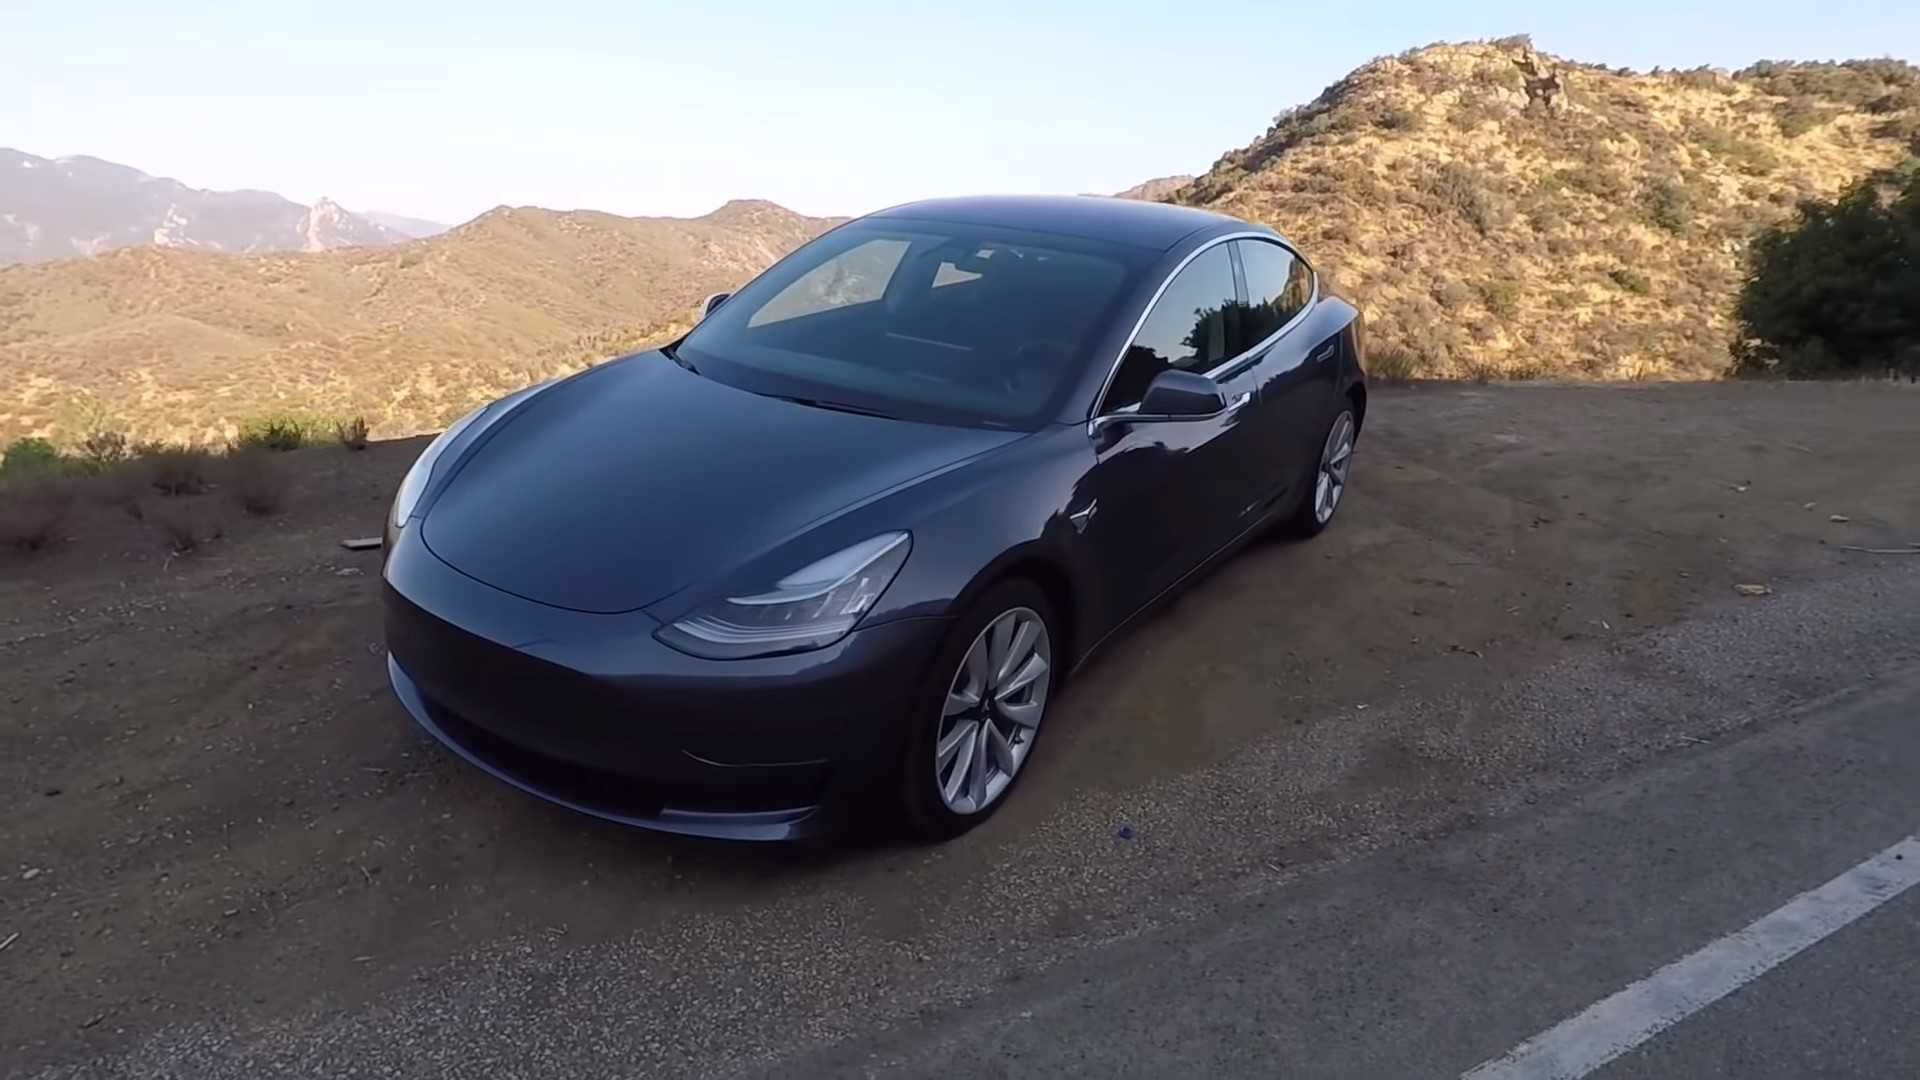 The Smoking Tire Presents Its Tesla Model 3 Test Drive Review